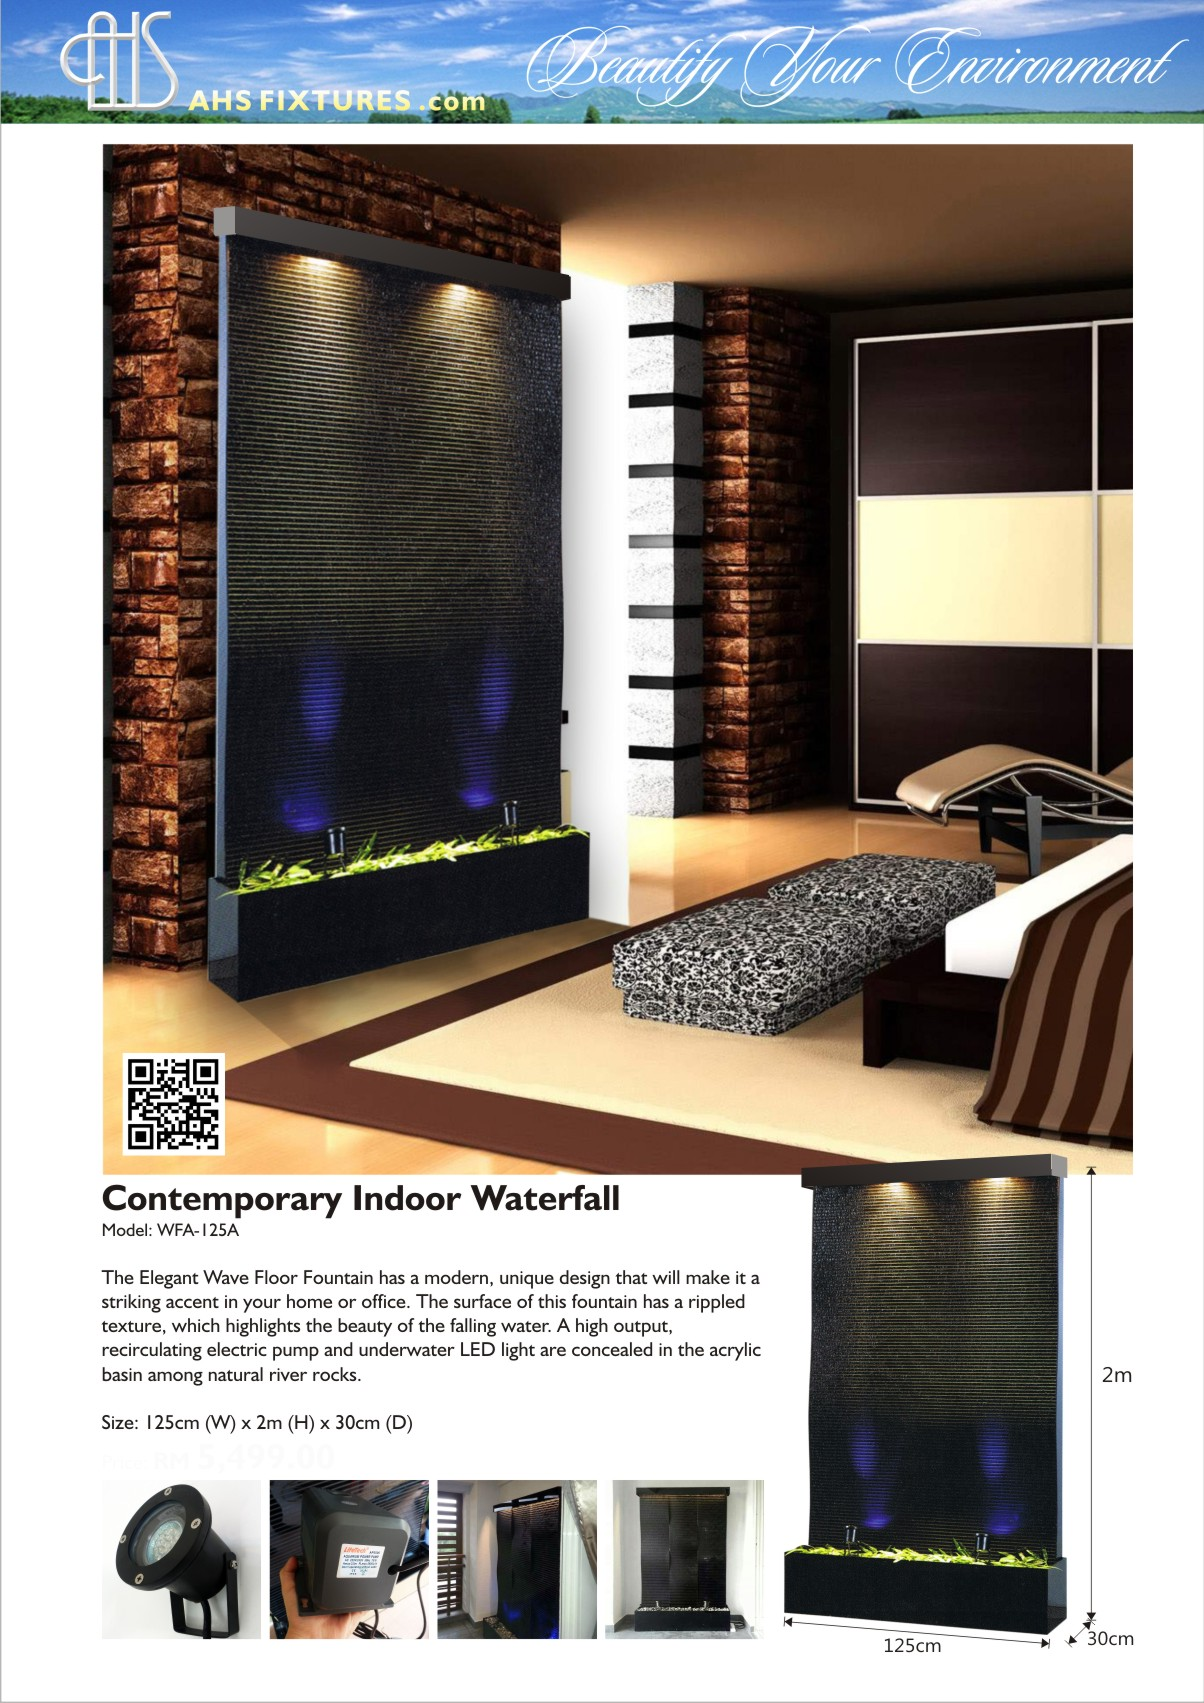 WFA-125-A Contemporary Indoor Watefall Floor Fountain